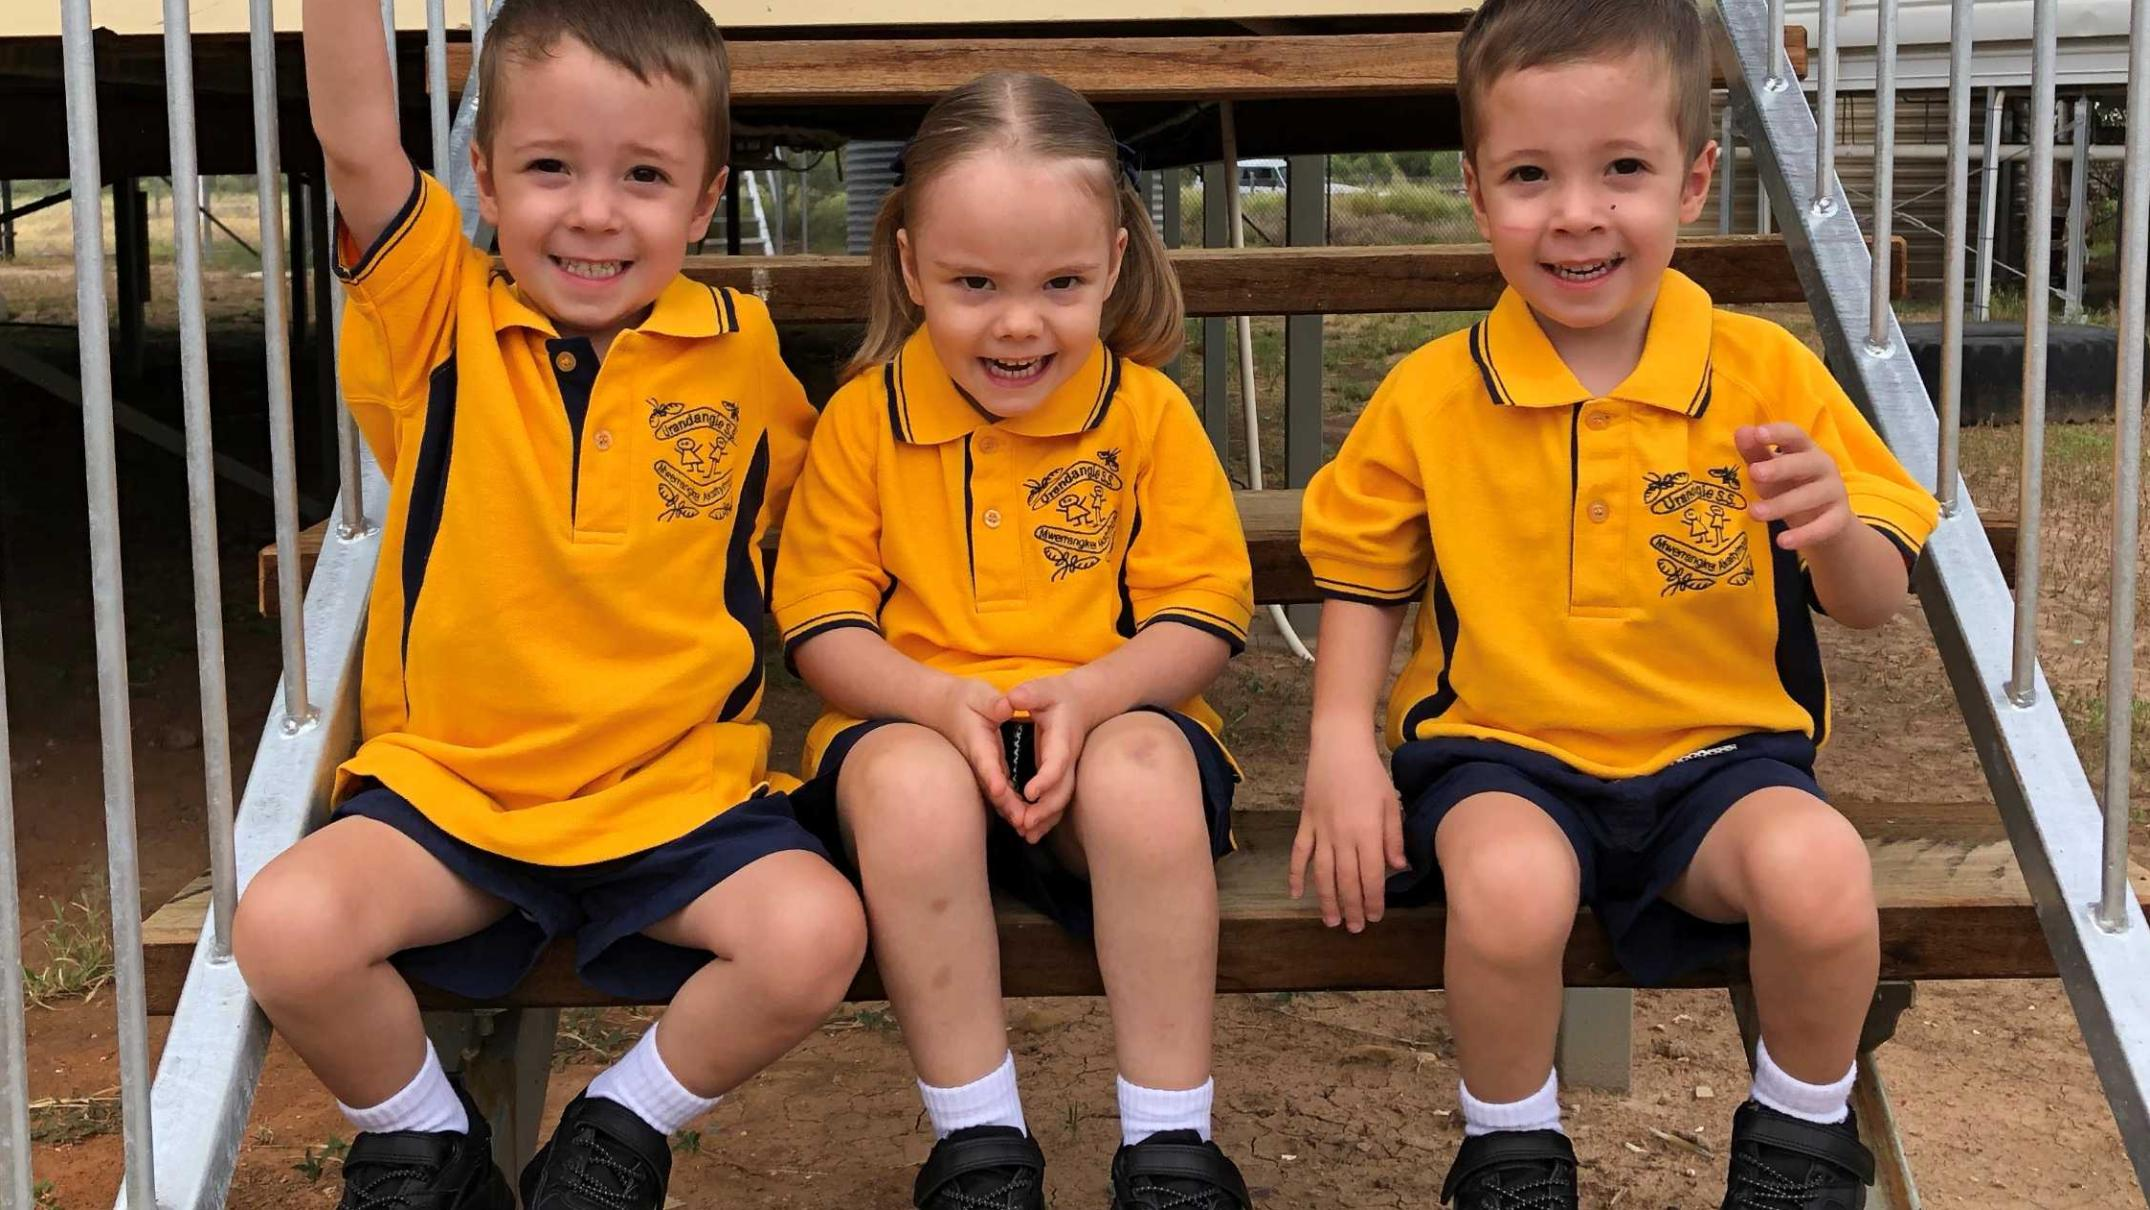 triplets-make-up-a-quarter-of-students-at-outback-school-—-and-the-principal-is-their-dad